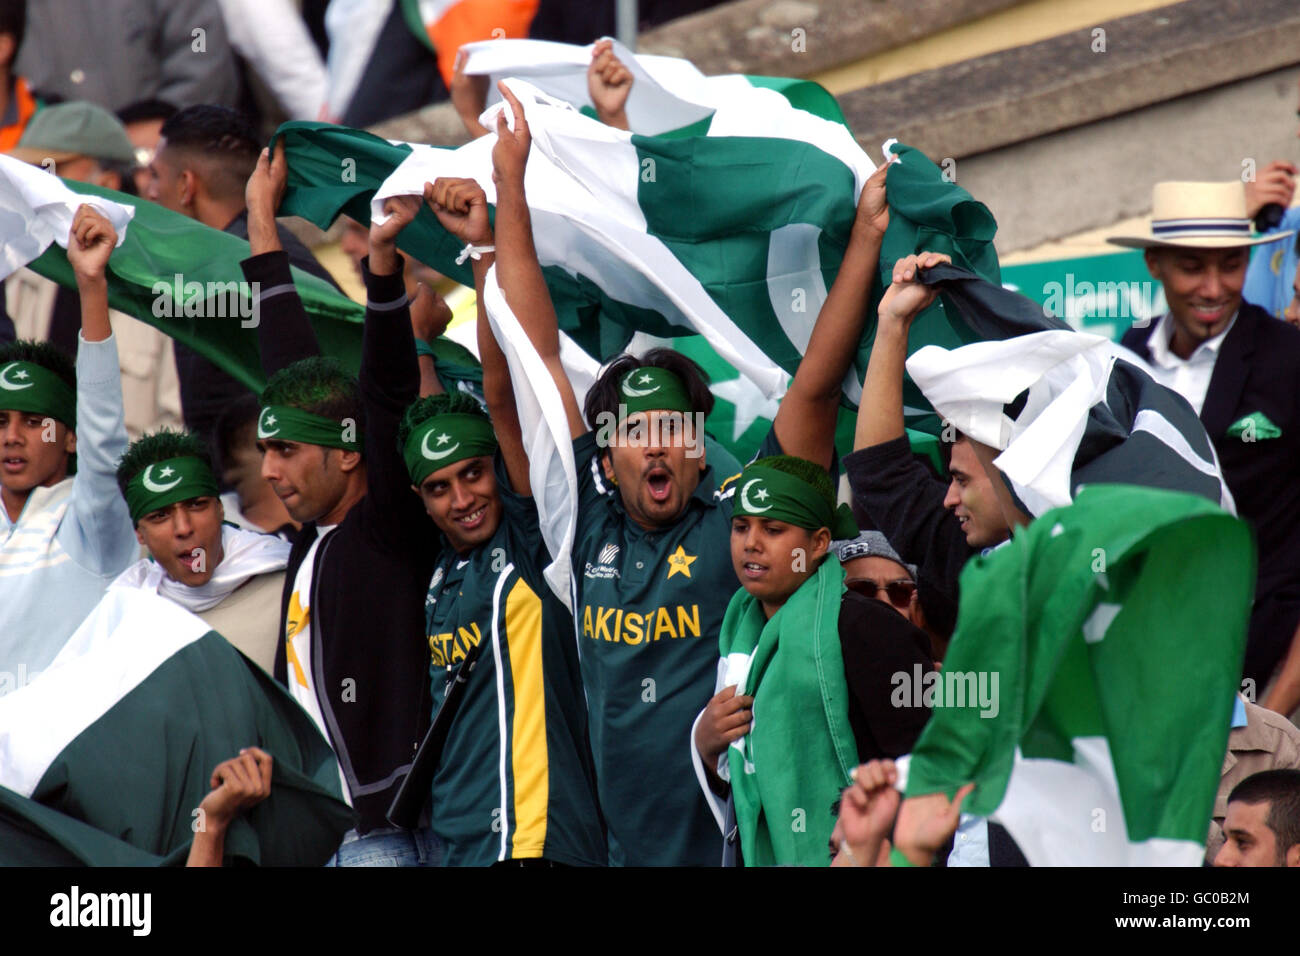 Cricket Fans Cheer Stock Photos Images